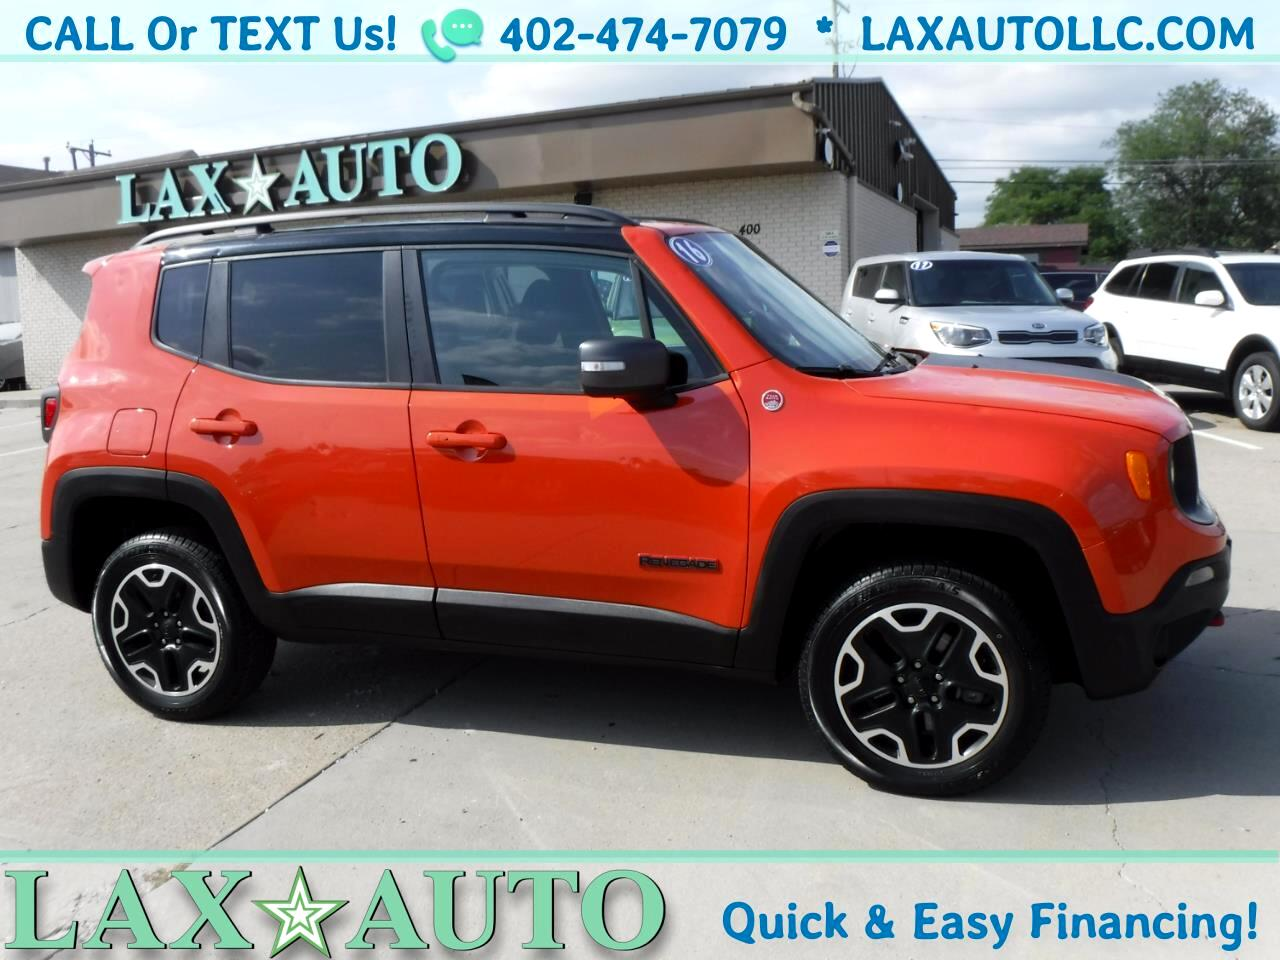 2016 Jeep Renegade Trailhawk 4X4 * 54k miles *Orange/Black*